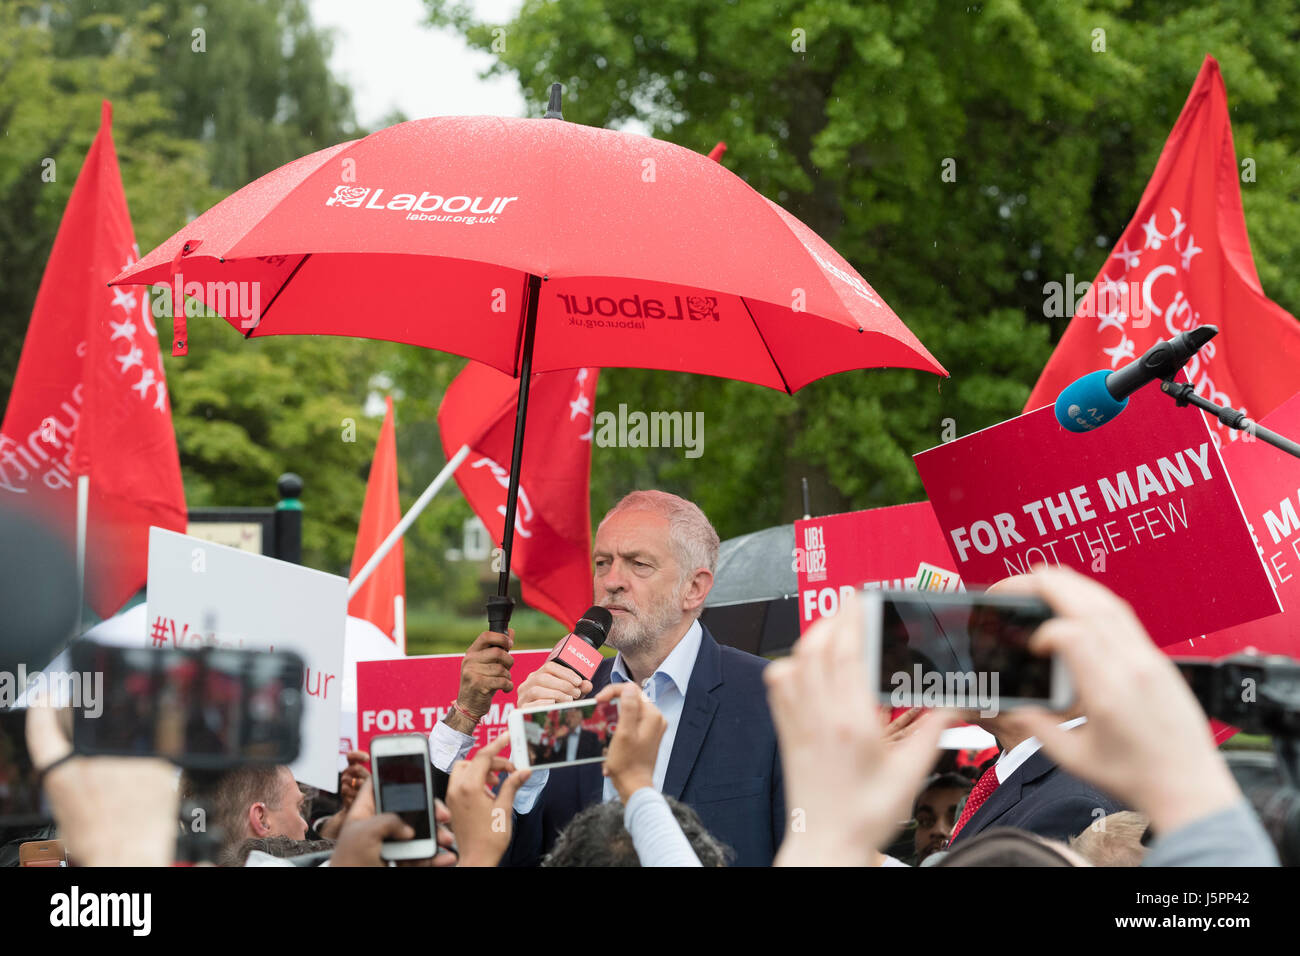 London, UK. 18th May, 2017. Jeremy Corbyn, the Labour party leader, speaking at a general election rally, Manor - Stock Image